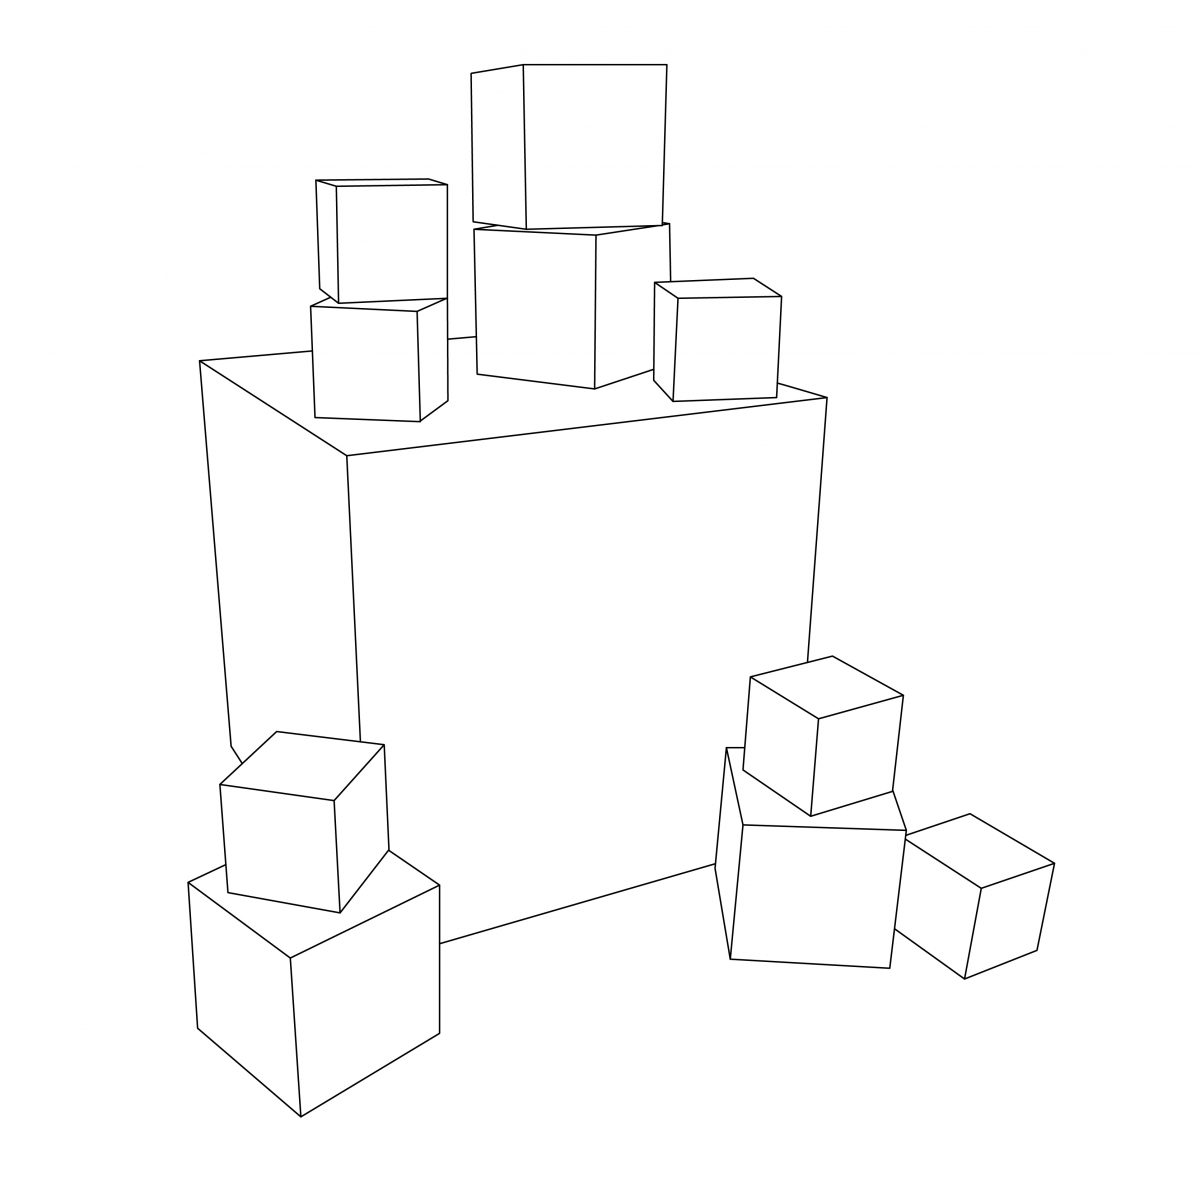 Custom cardboard cubes for baby shower decorations - outline